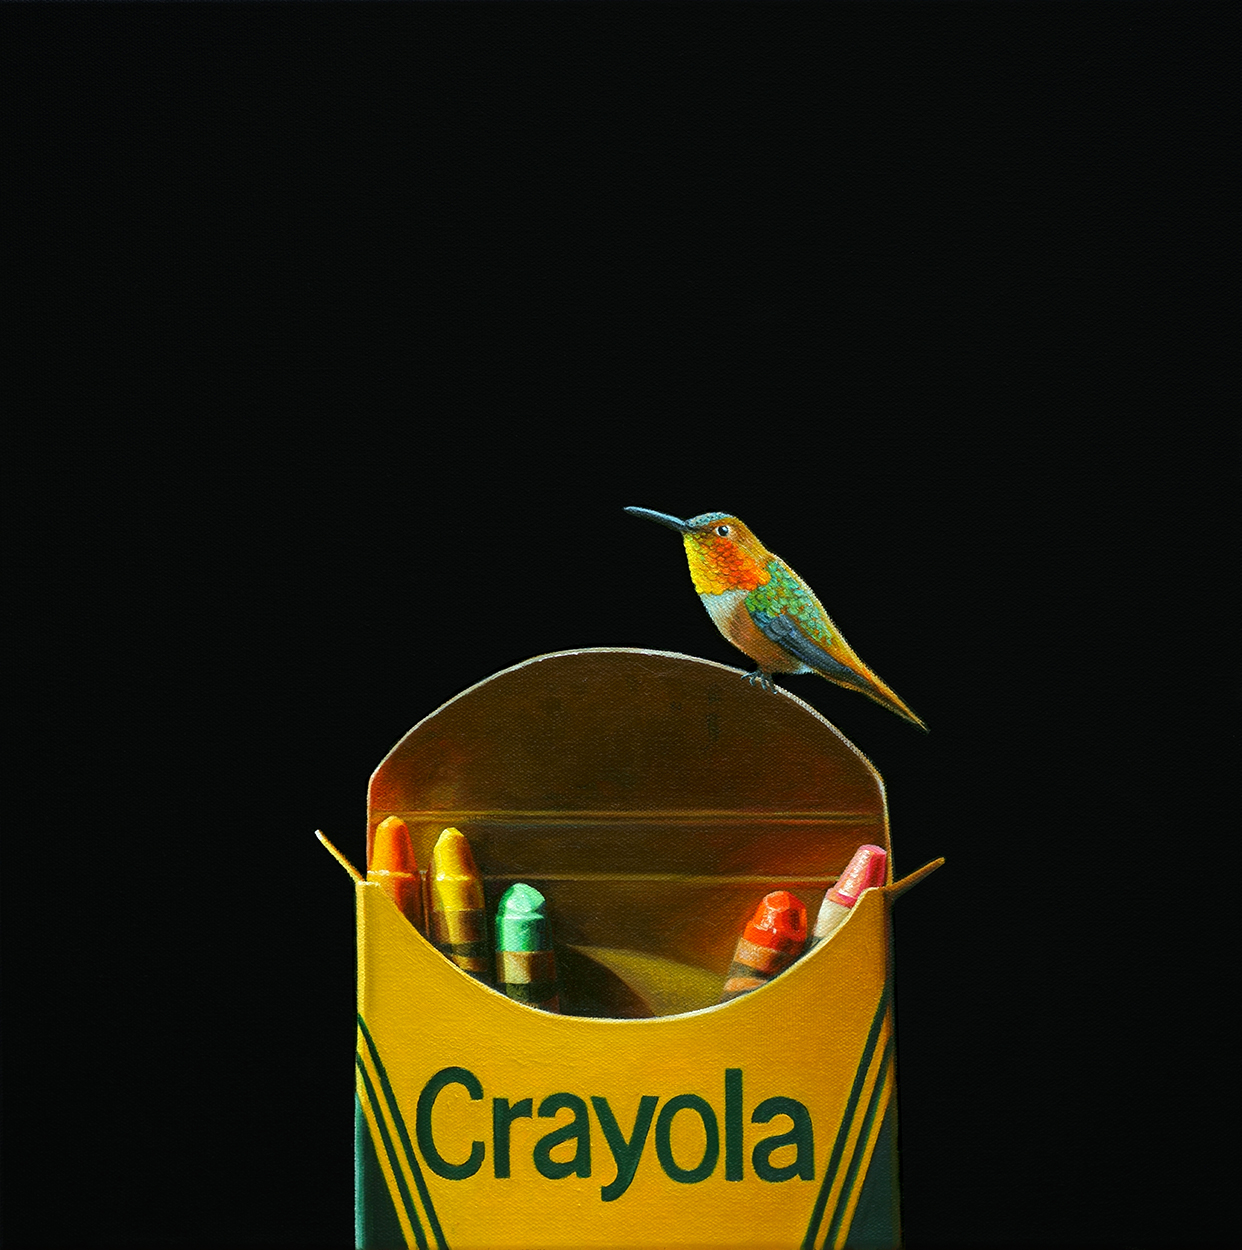 Crayola No. 5 | 16 x 16 | Oil on canvas -  SOLD